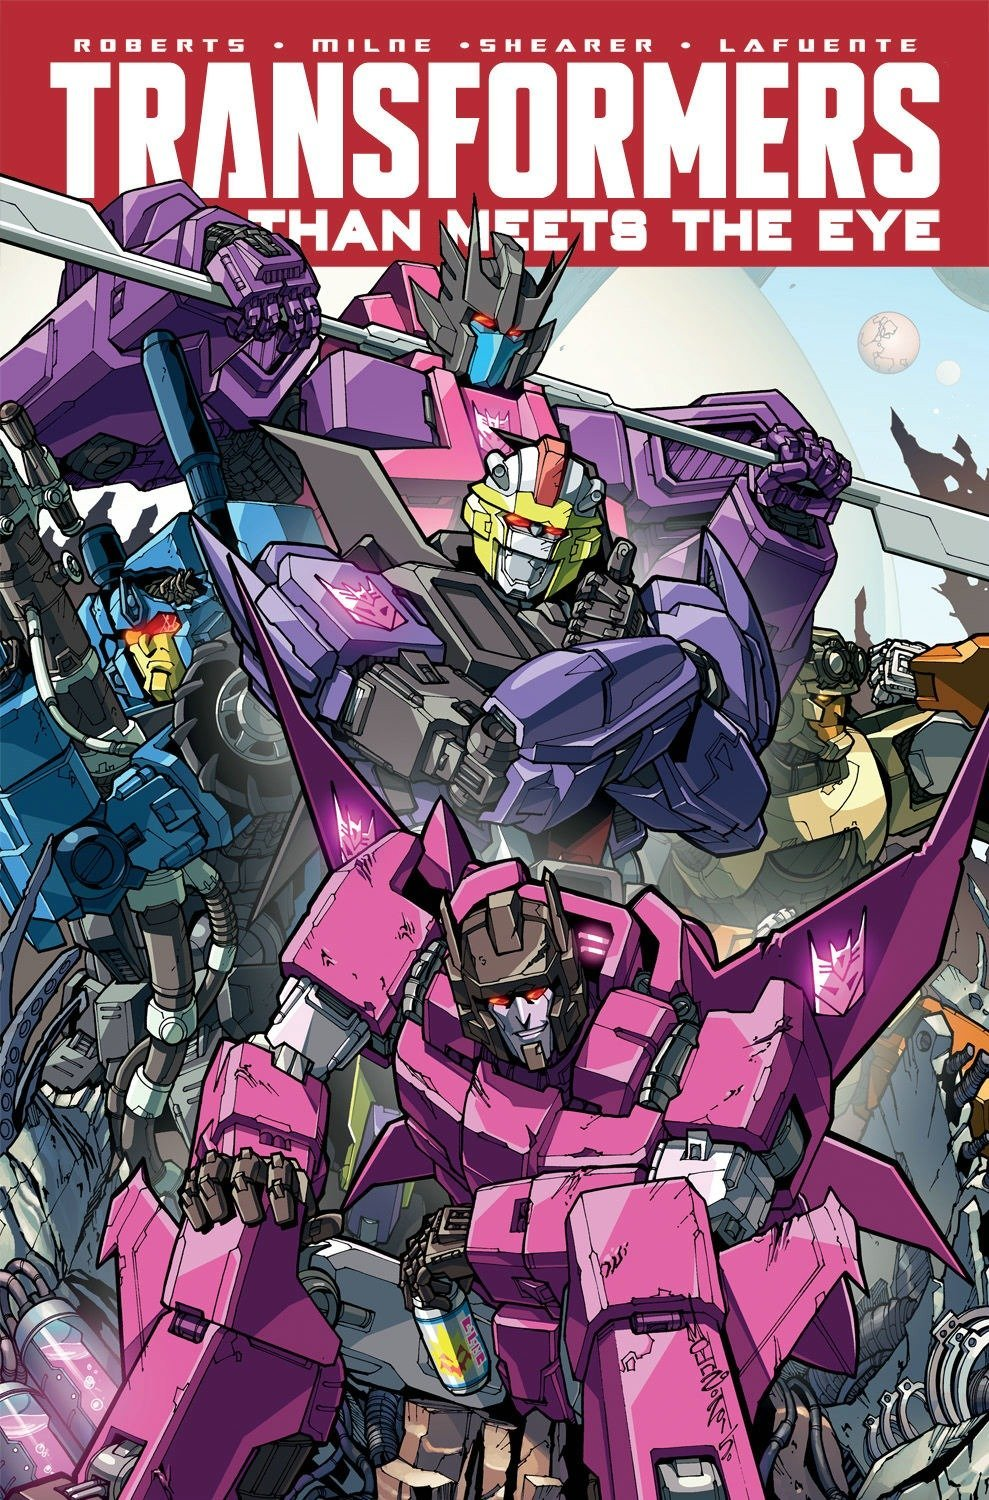 Transformers: More Than Meets The Eye Volume 9 Paperback – May 17, 2016